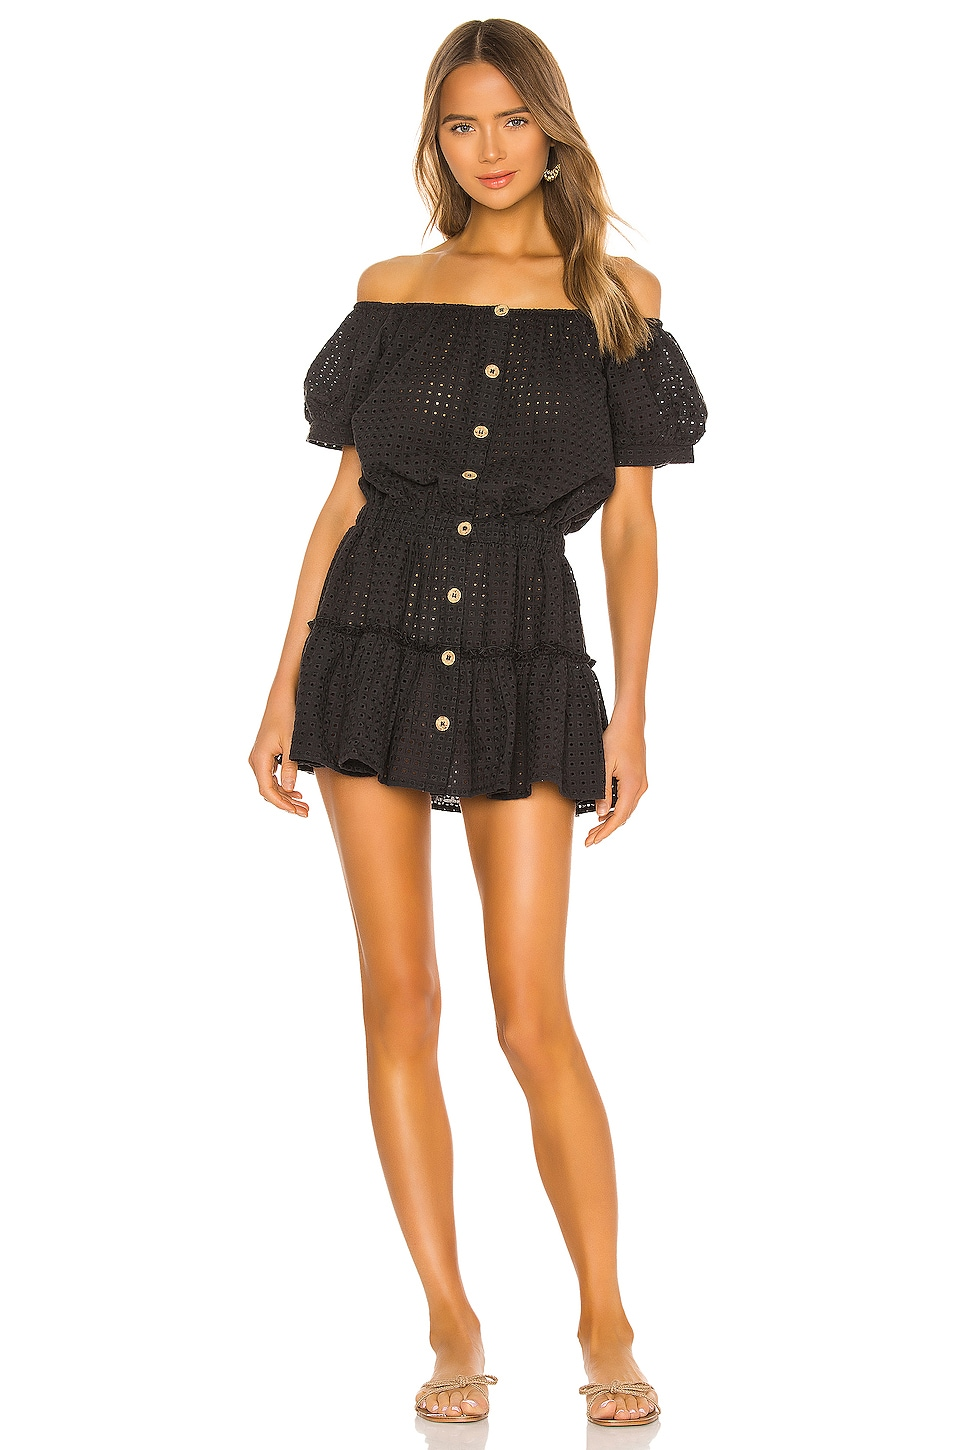 eberjey x REVOLVE Harper Nellie Dress in Black